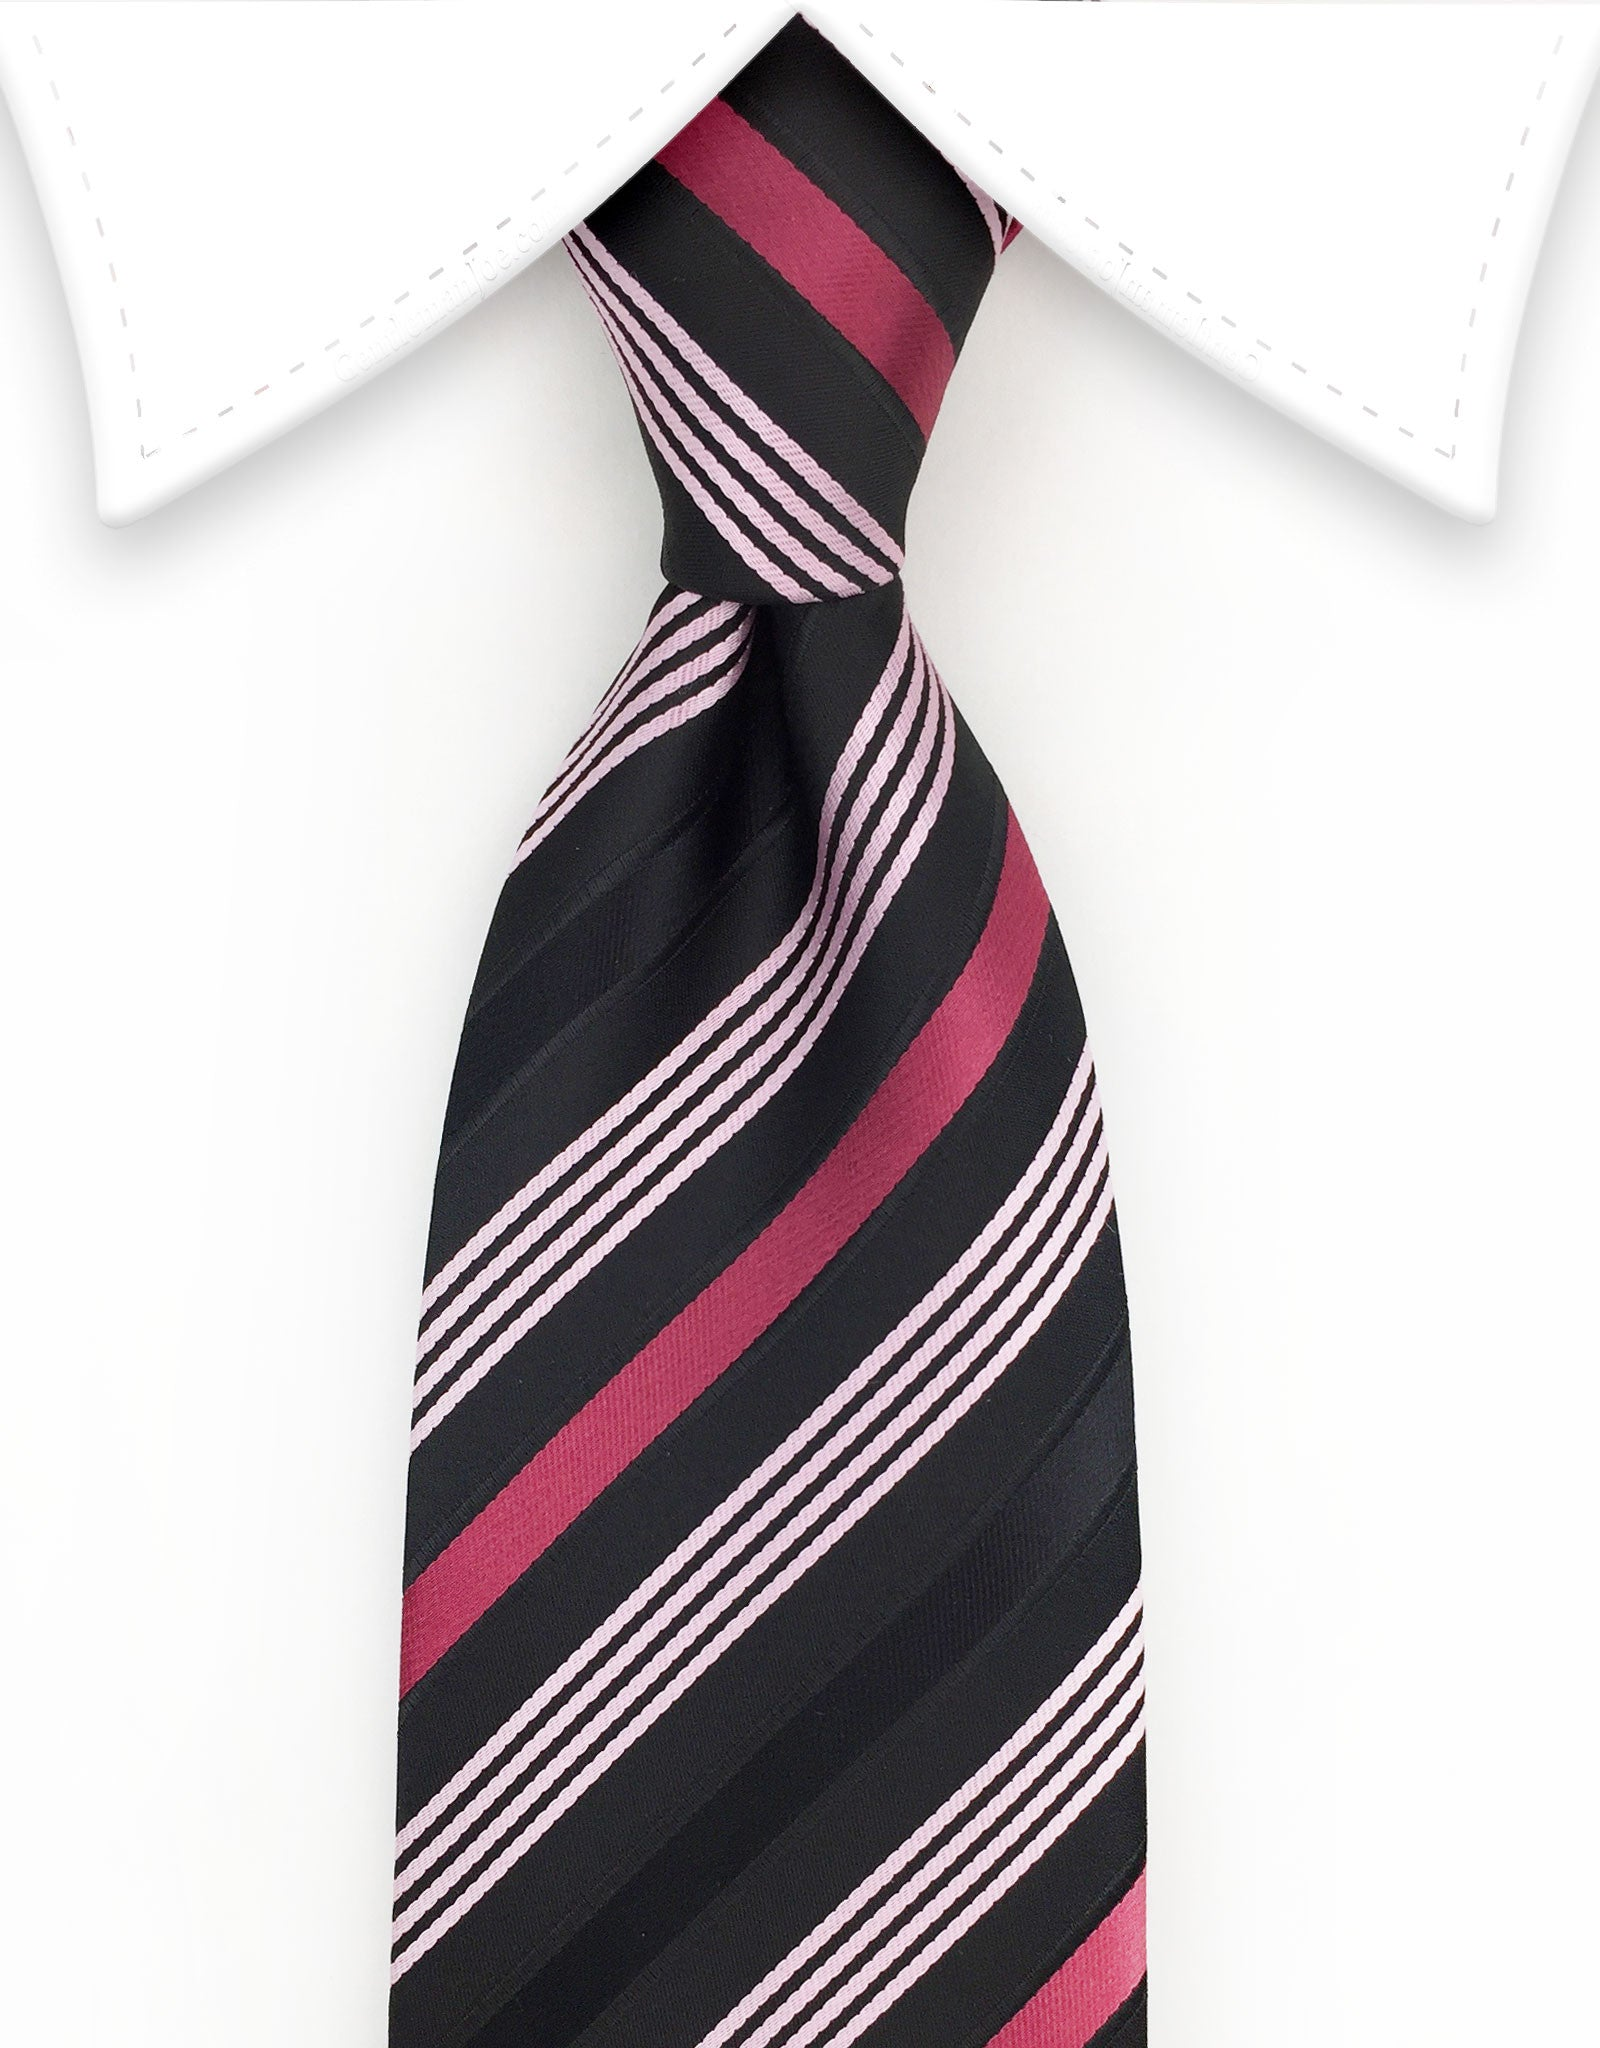 Black & Pink Striped Necktie